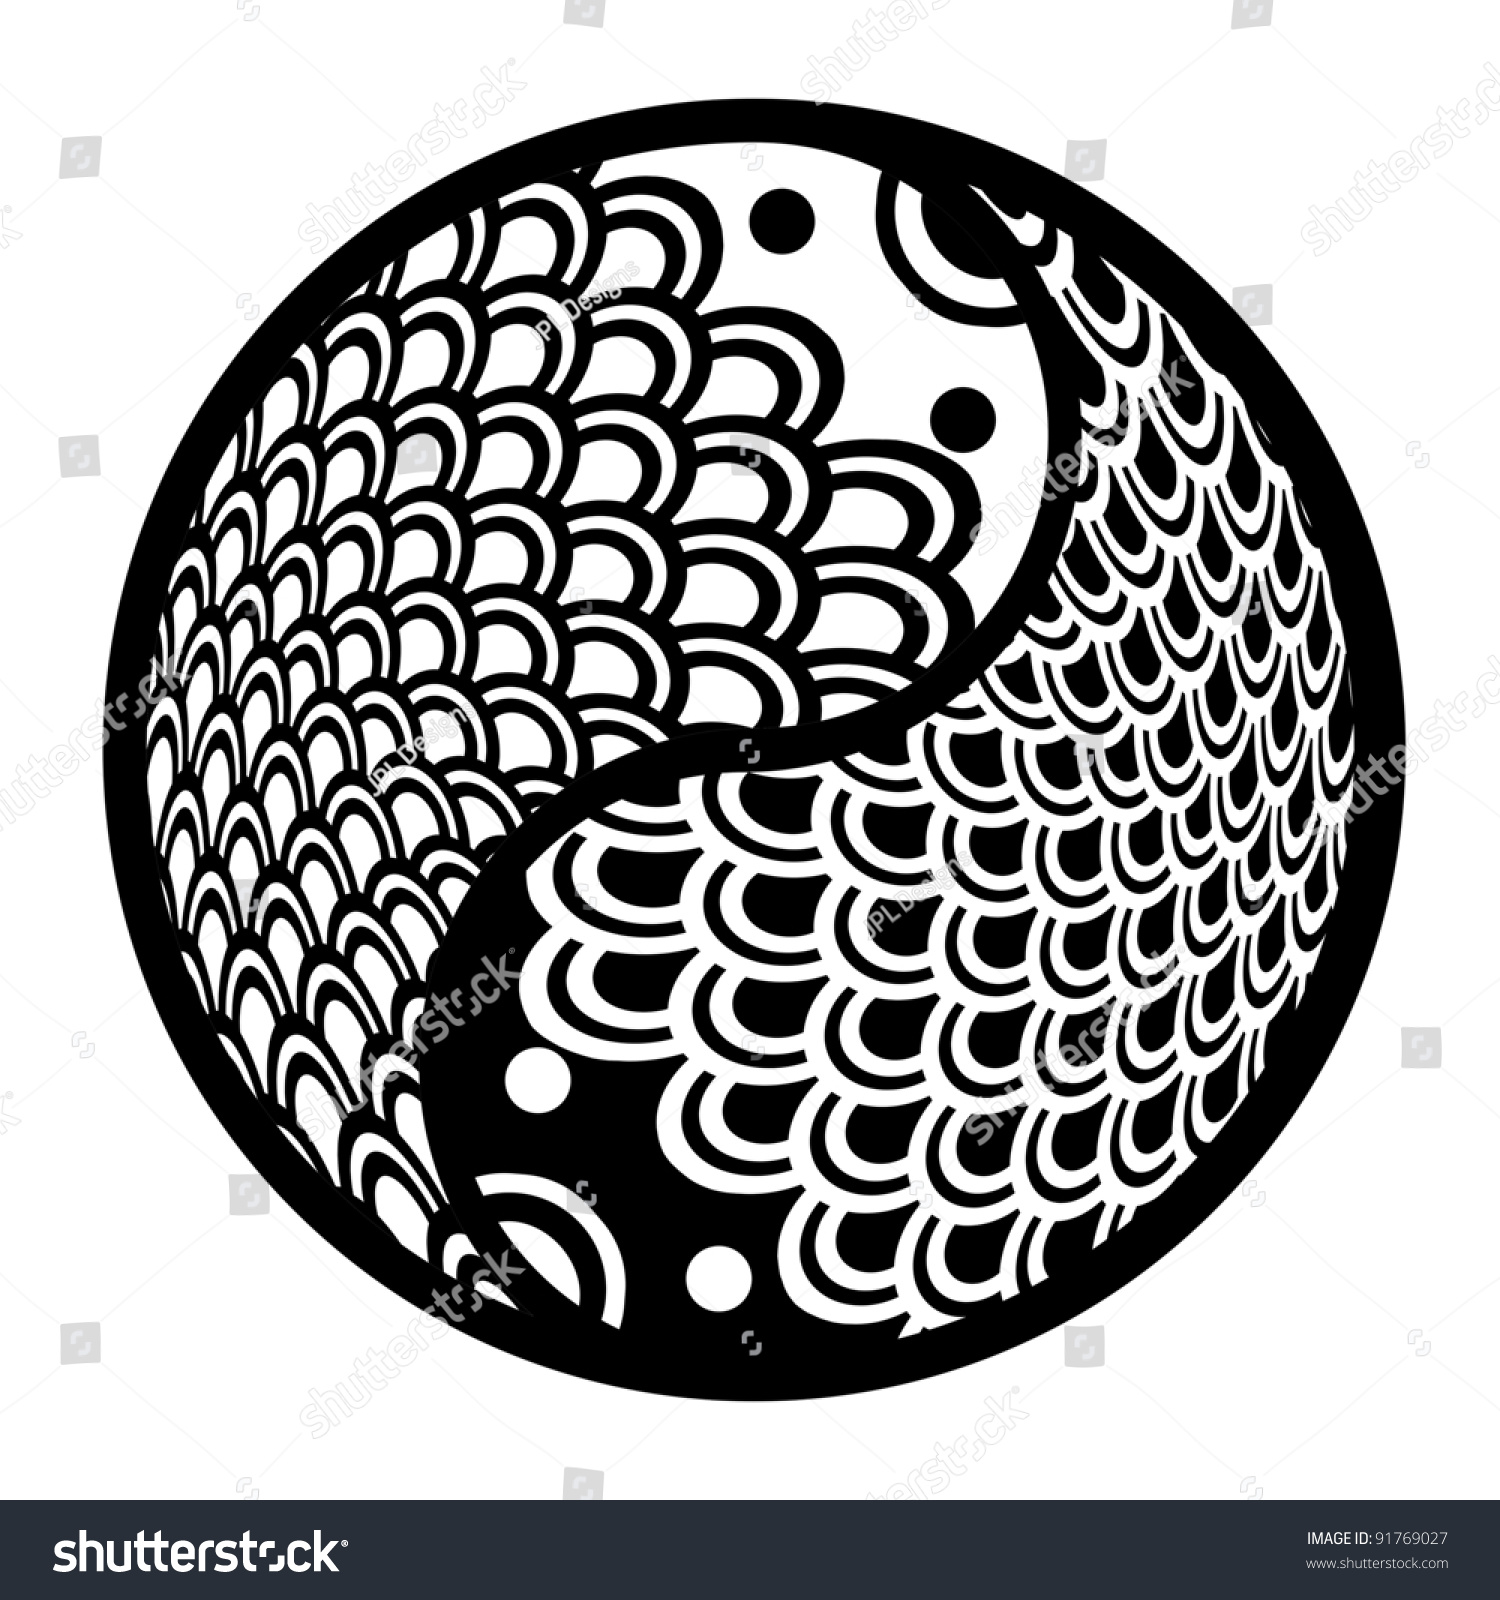 Chinese Pair Fish Yin Yang Eternity Stock Illustration 91769027 ...